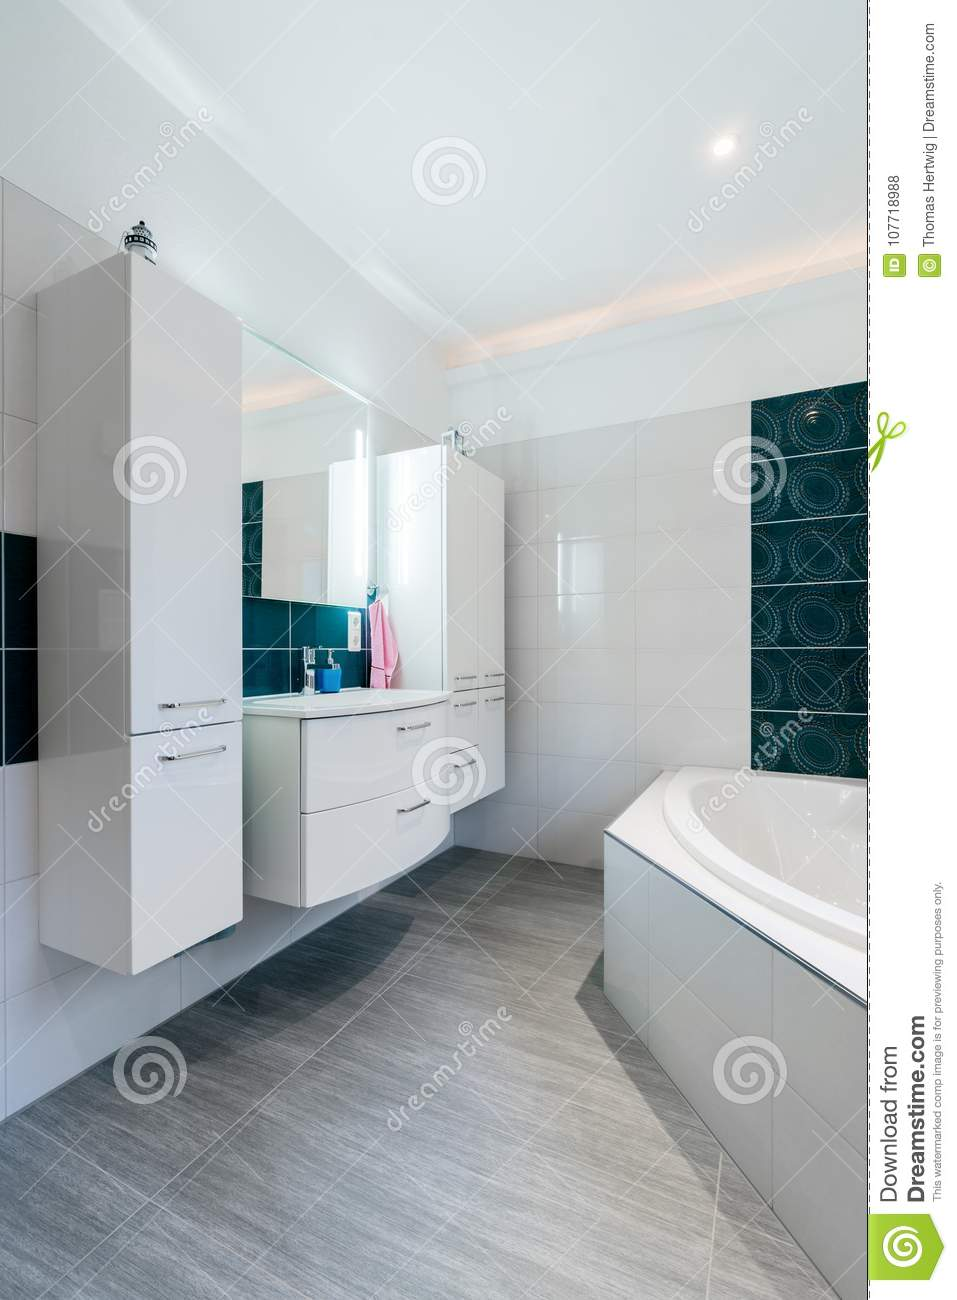 Spacious Bathroom In Blue And White Tones With Heated Floors, Walk ...